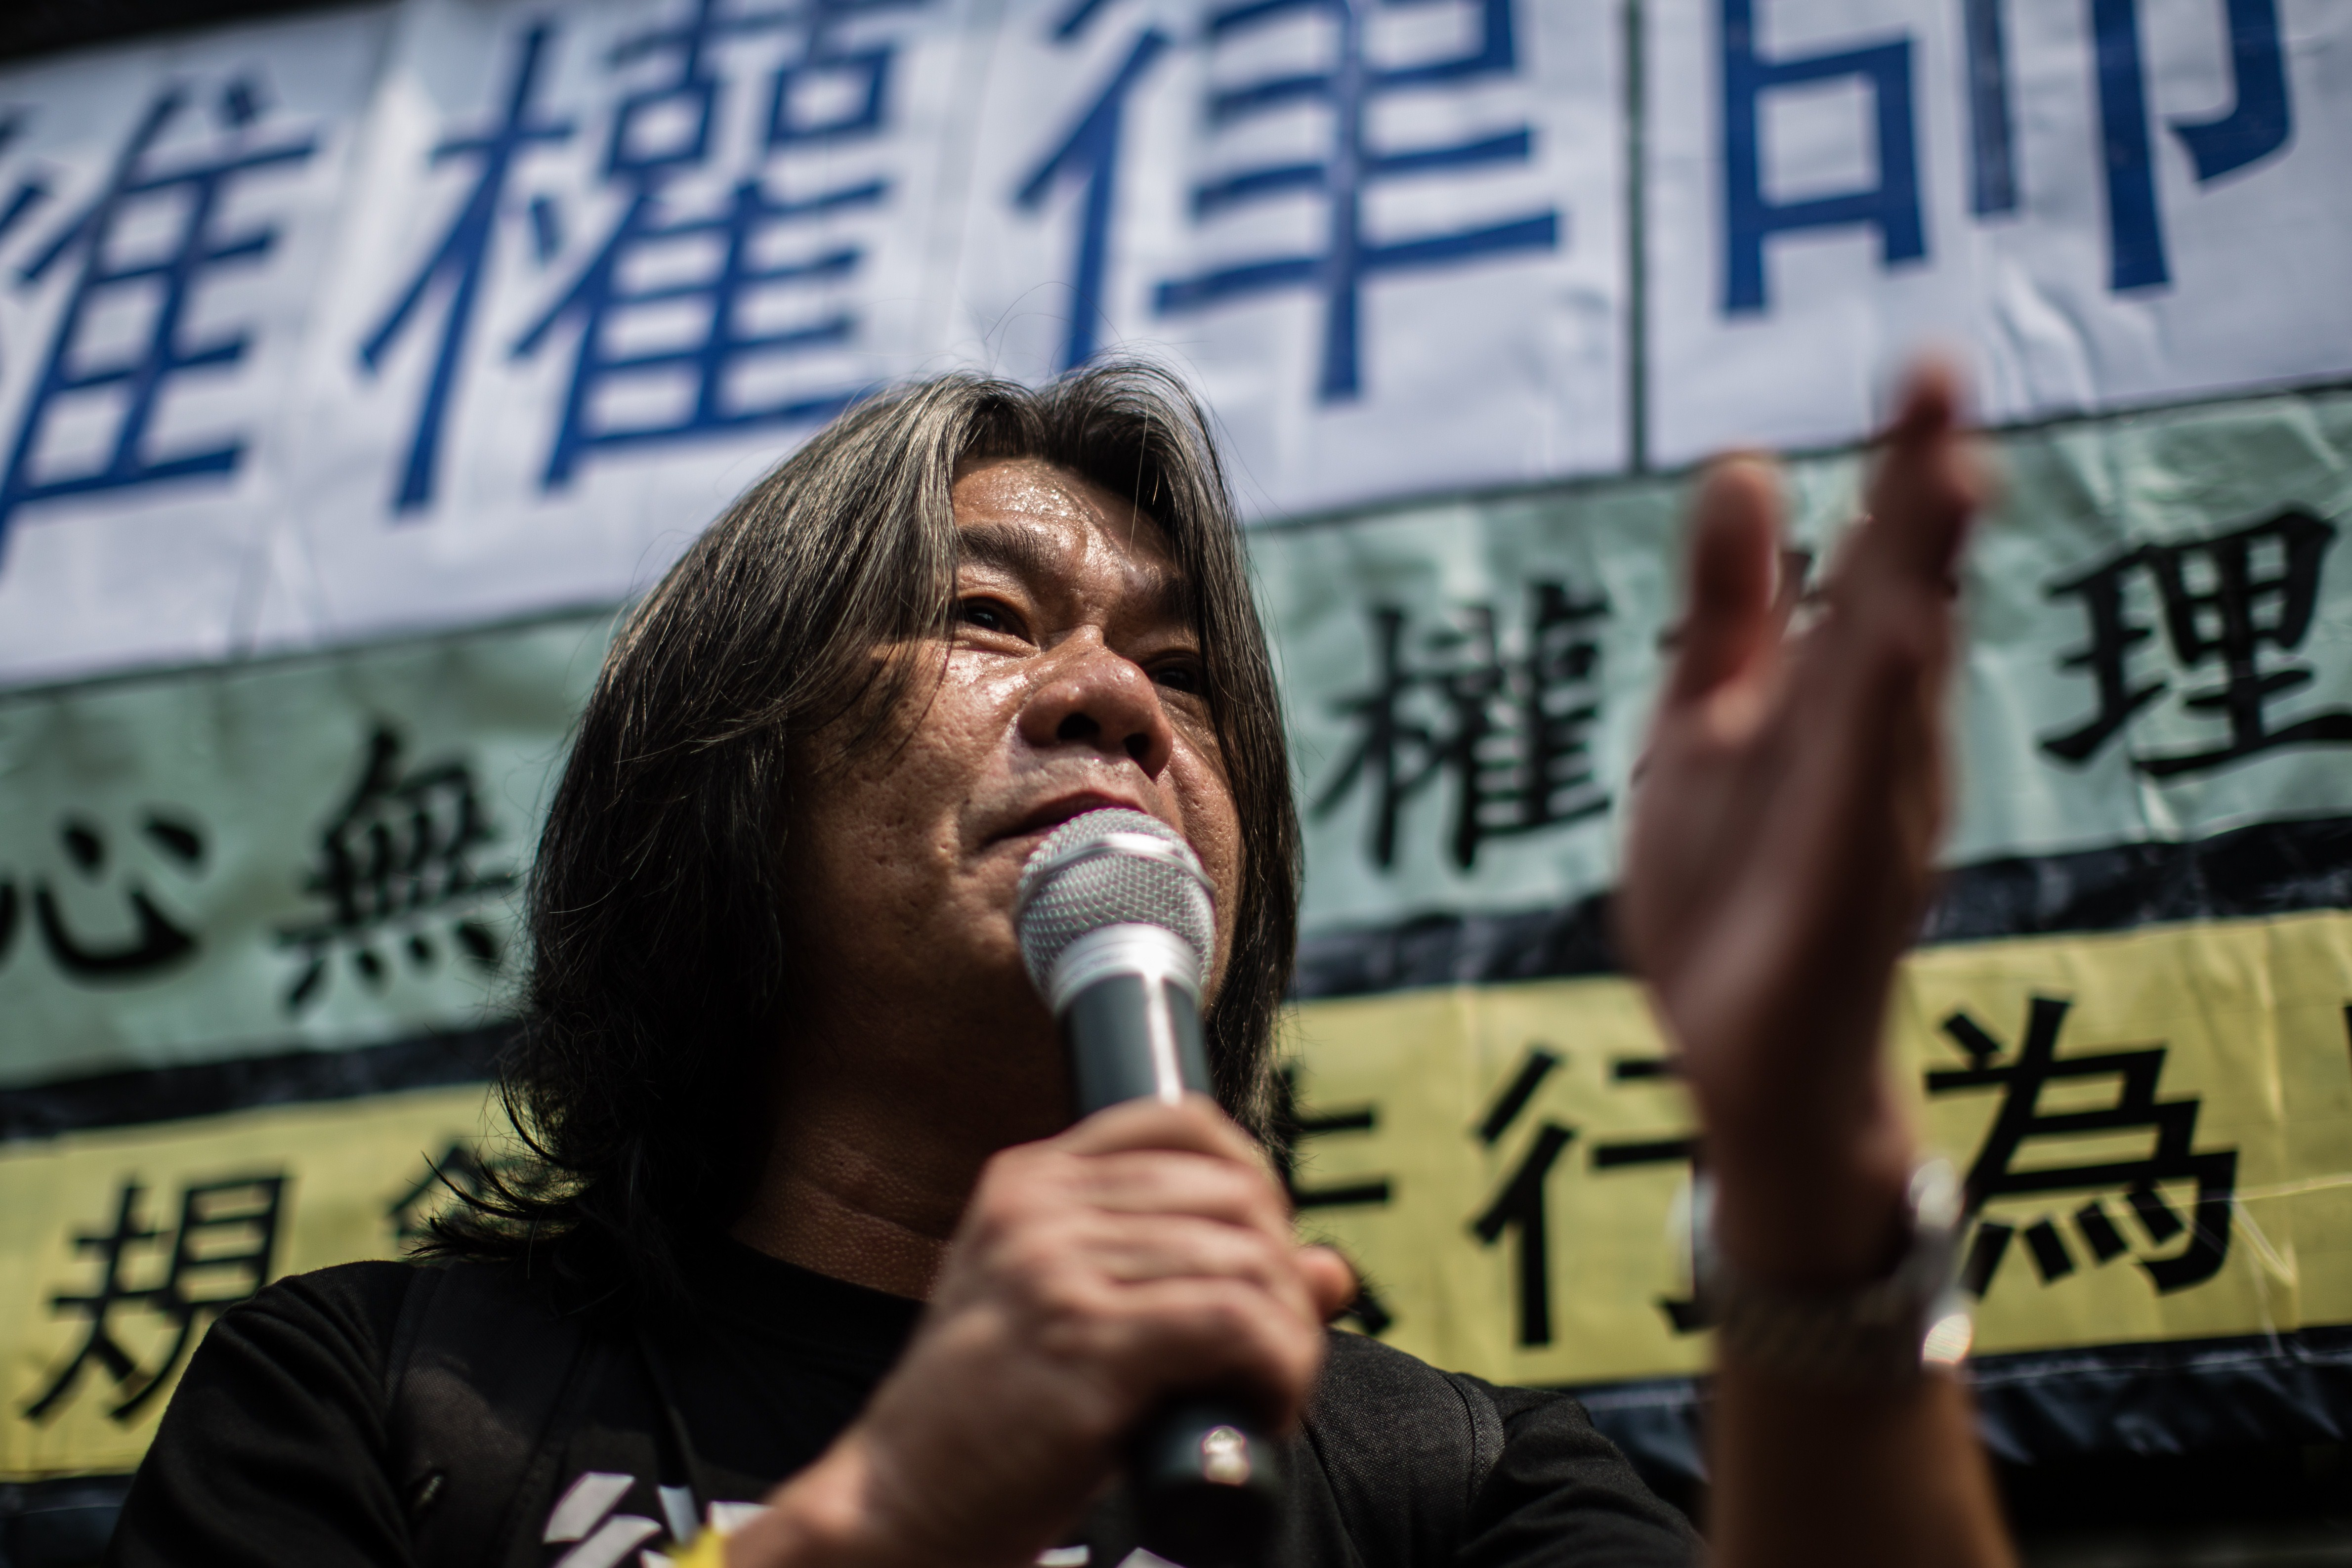 Hong Kong legislator Leung Kwok-hung, known as Long Hair, of the League of Social Democrats speaks during a protest in Hong Kong on July 12, 2015